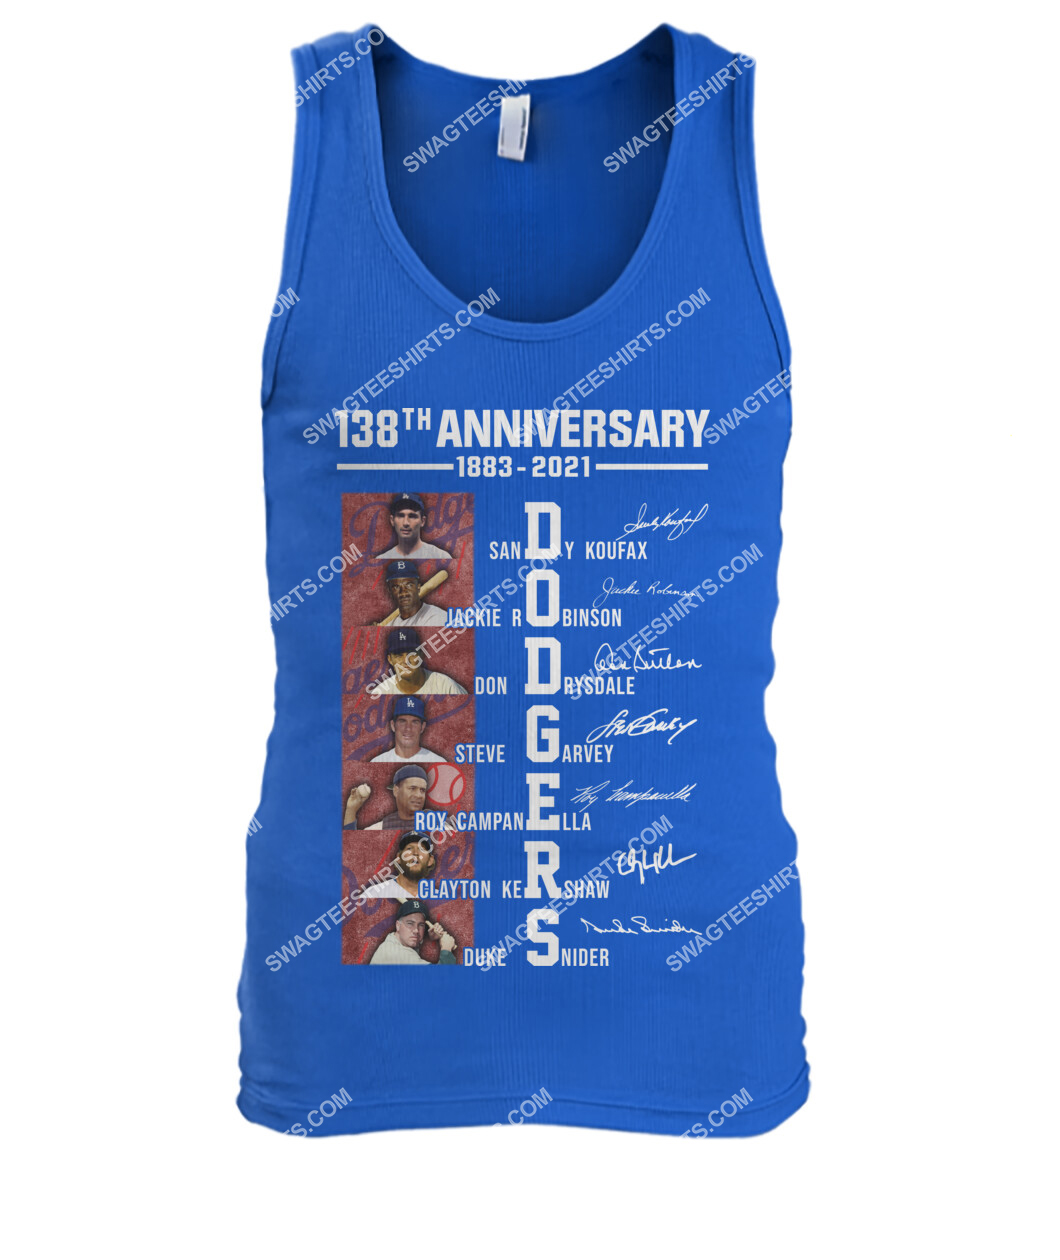 the los angeles dodgers 138th anniversary 1883 2021 signatures mlb tank top 1